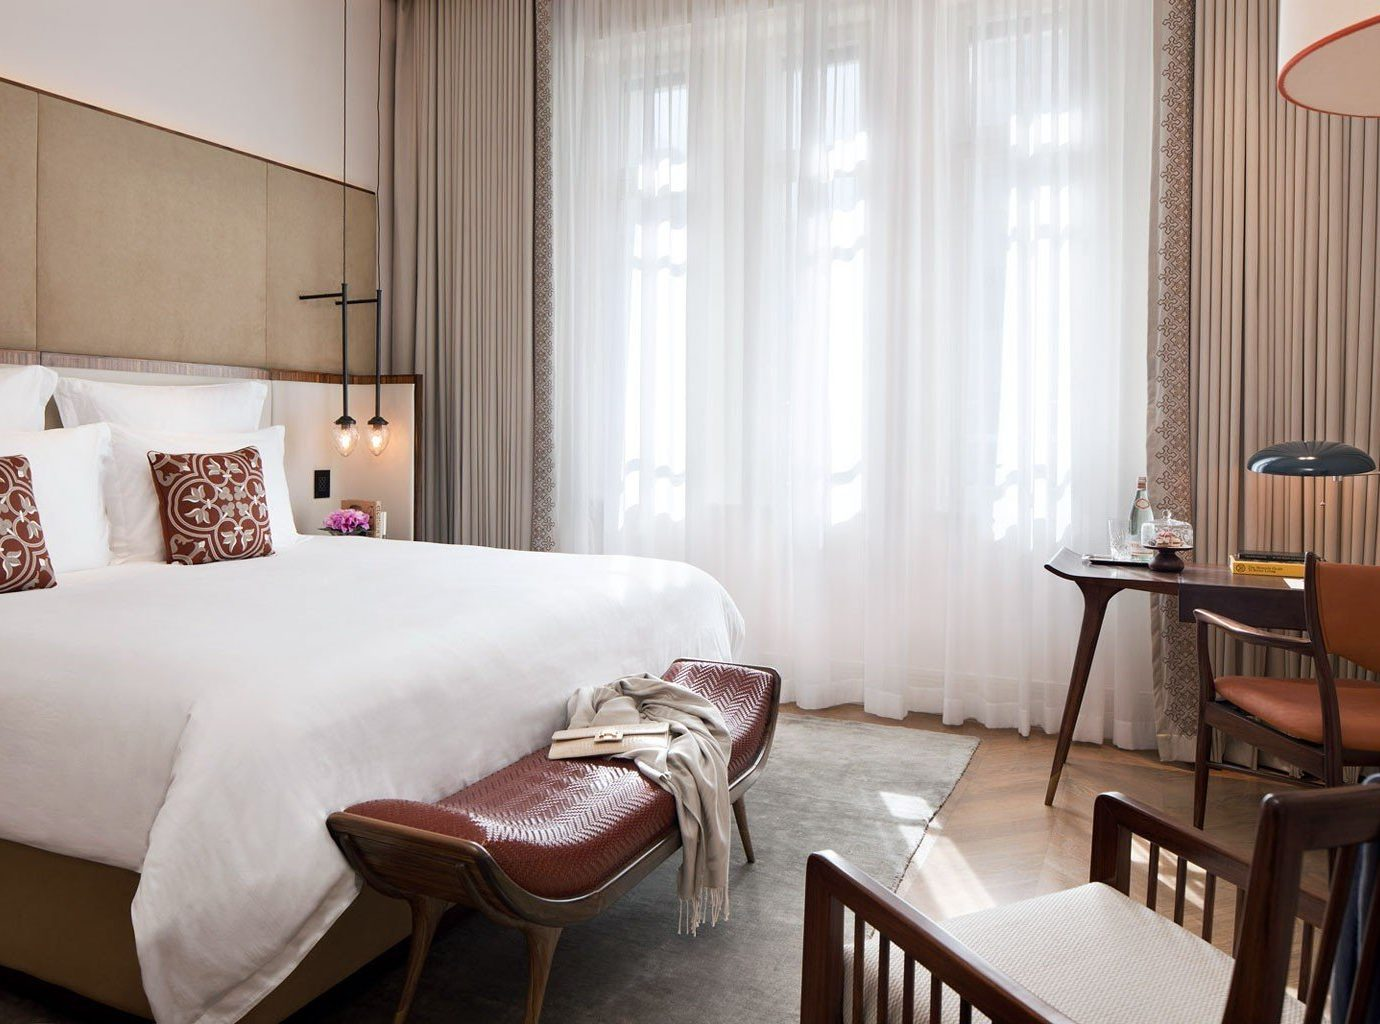 Hotels indoor room floor wall table window chair property hotel Suite interior design furniture cottage real estate Bedroom apartment decorated